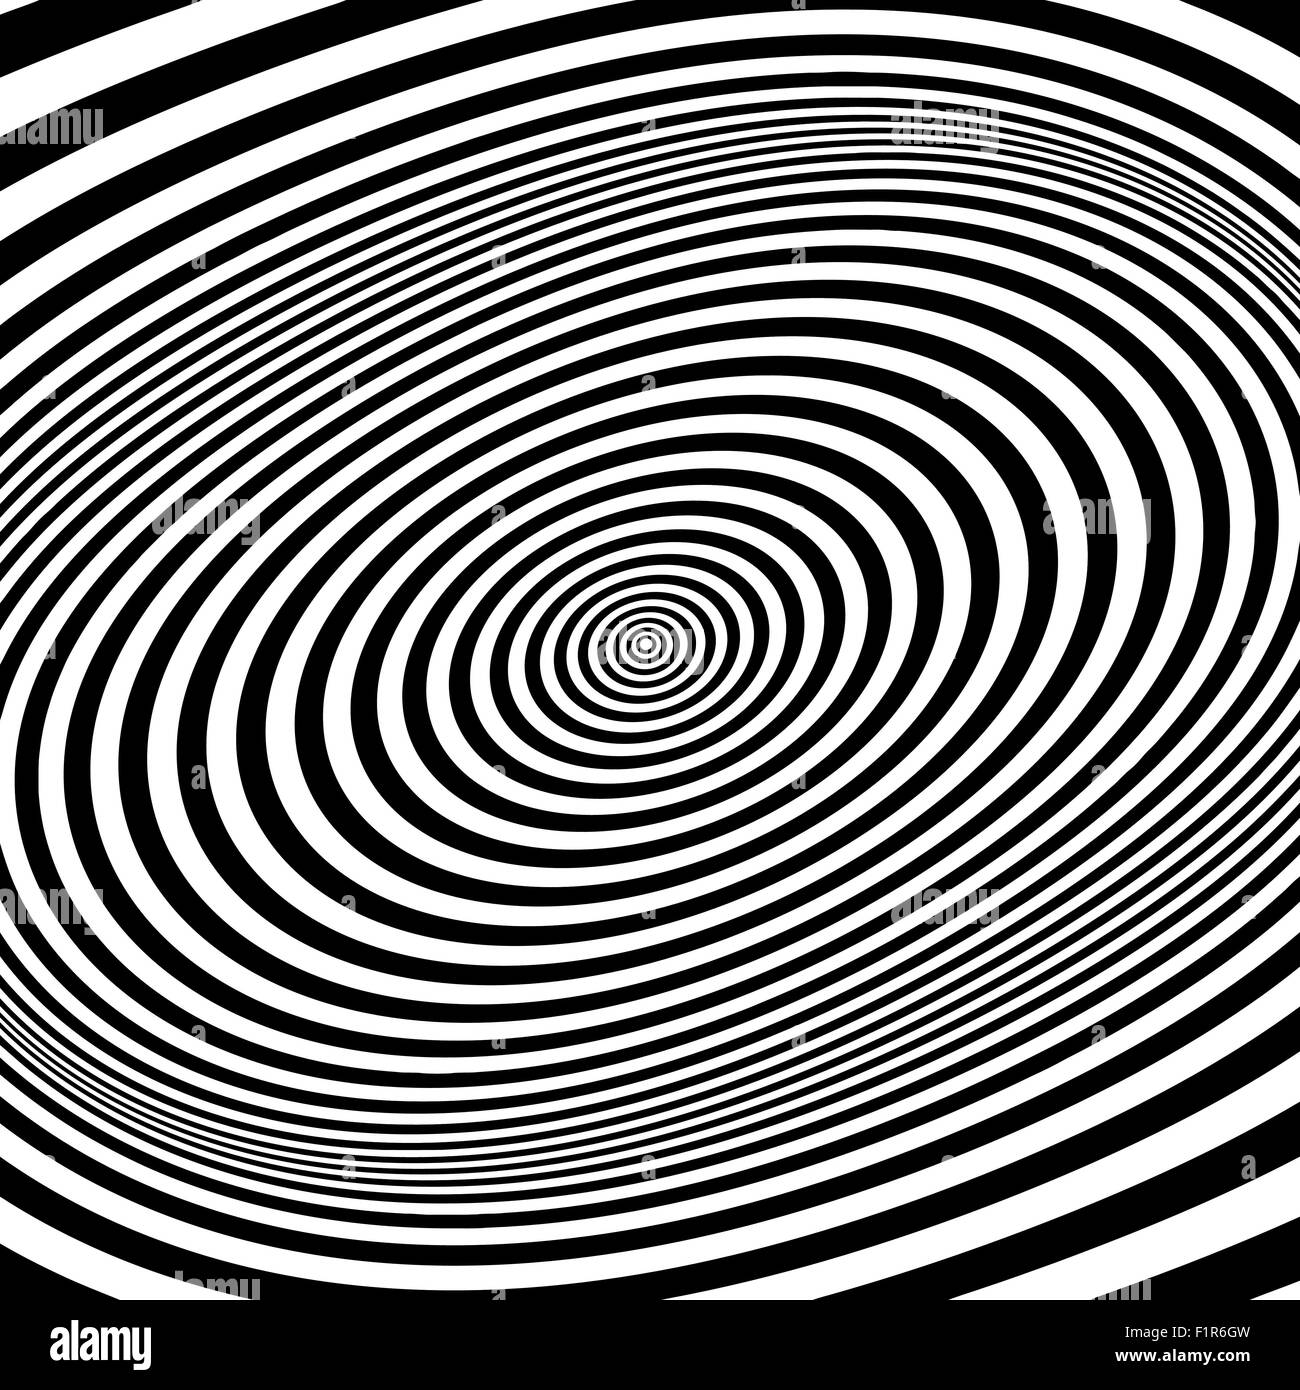 Black and white abstract striped background. Optical Art. Vector illustration. - Stock Image